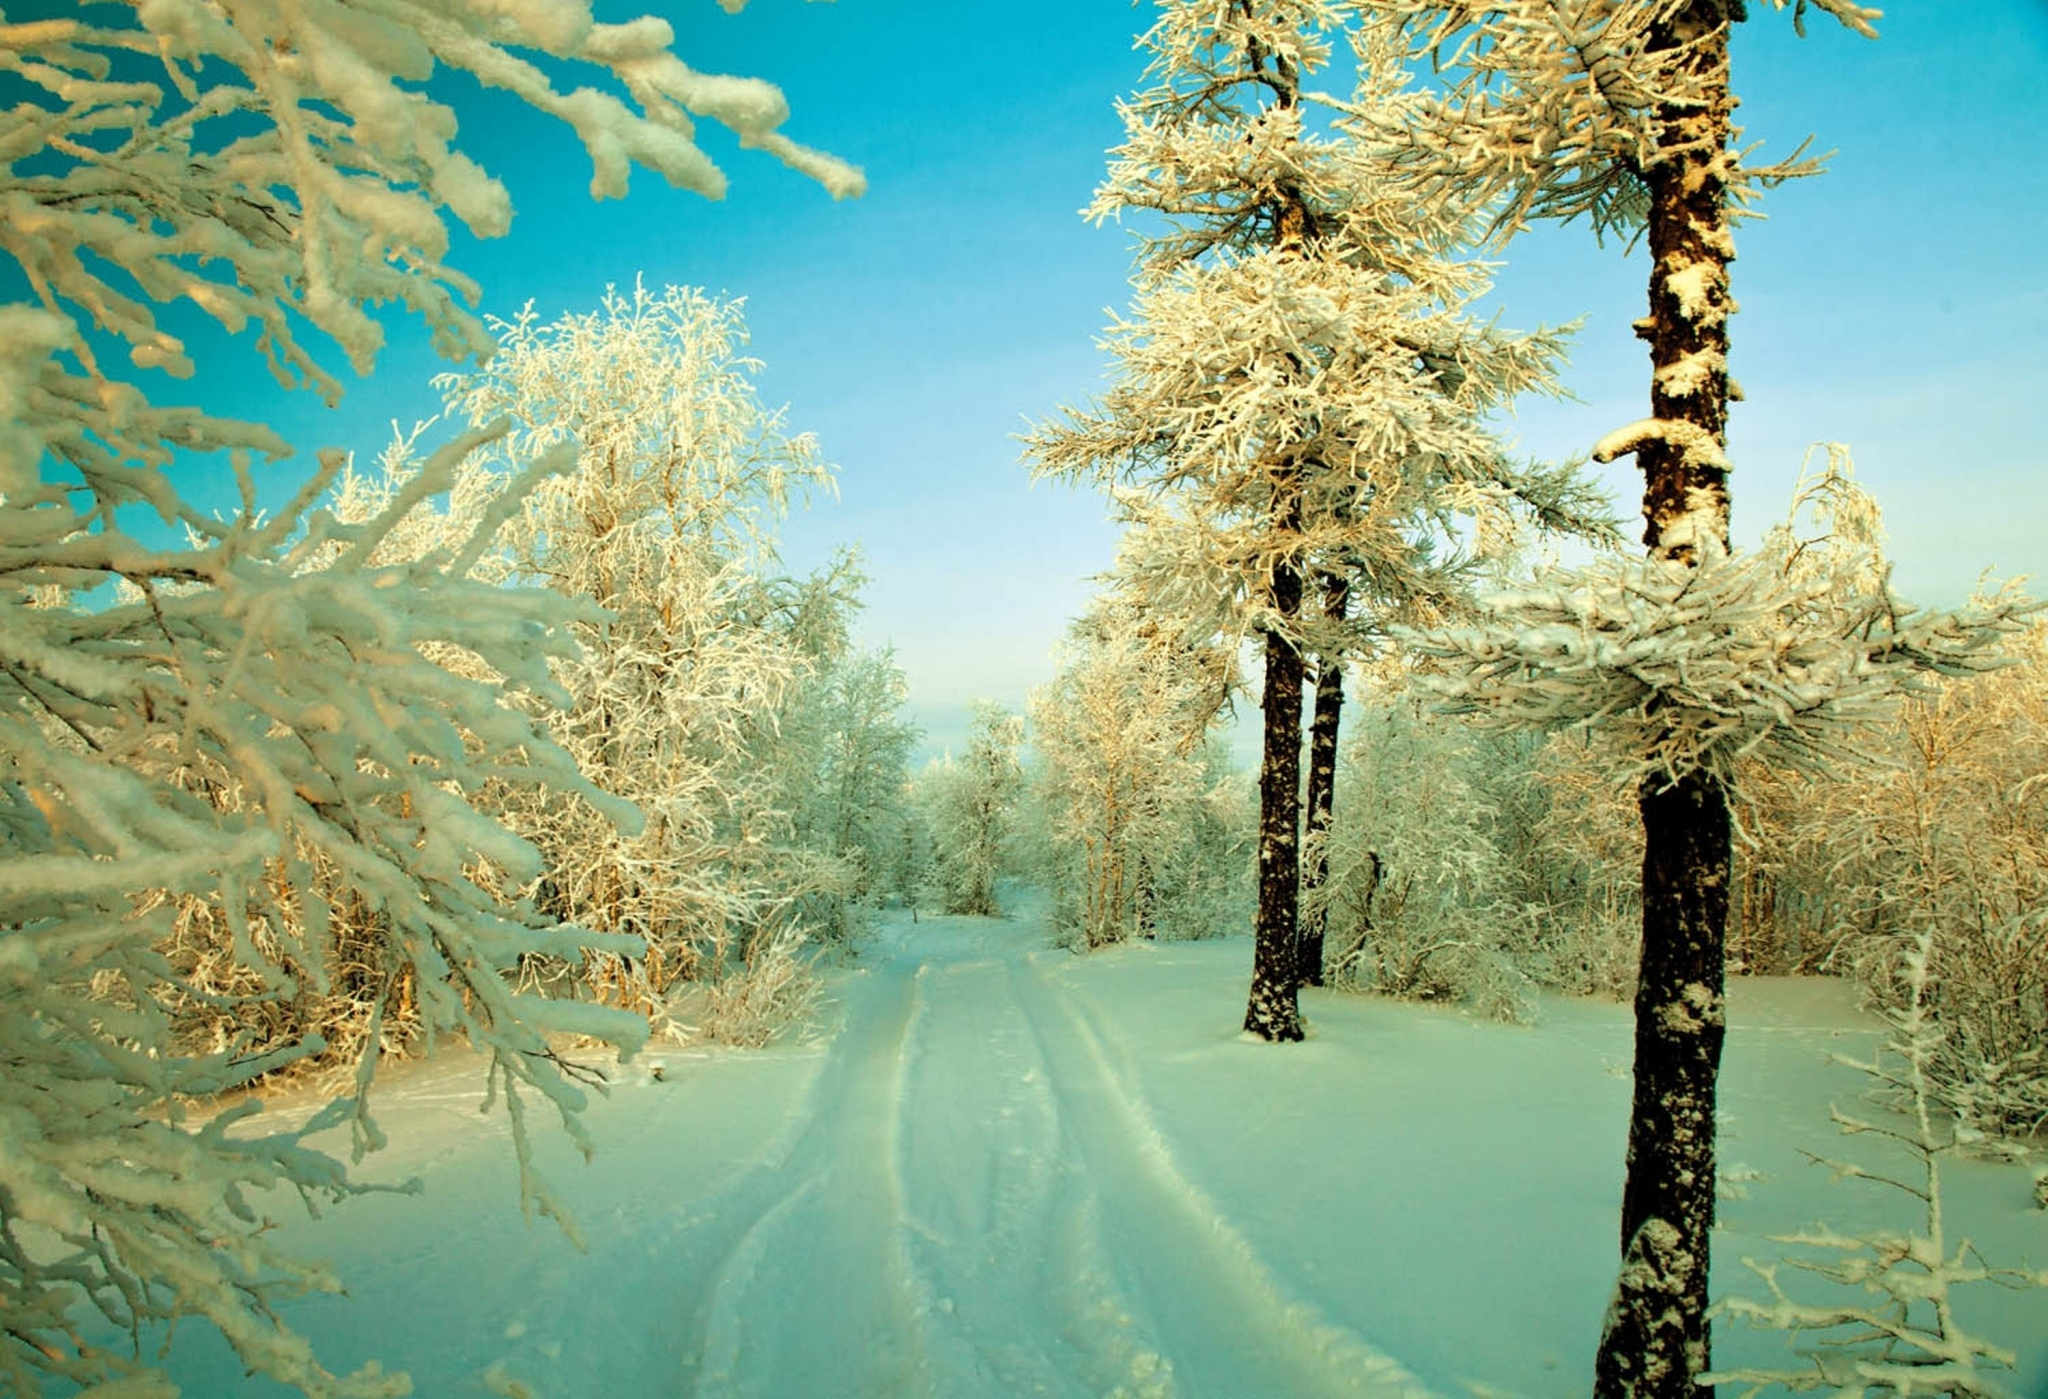 Wallpapers HD invierno y nieve - Parte 12